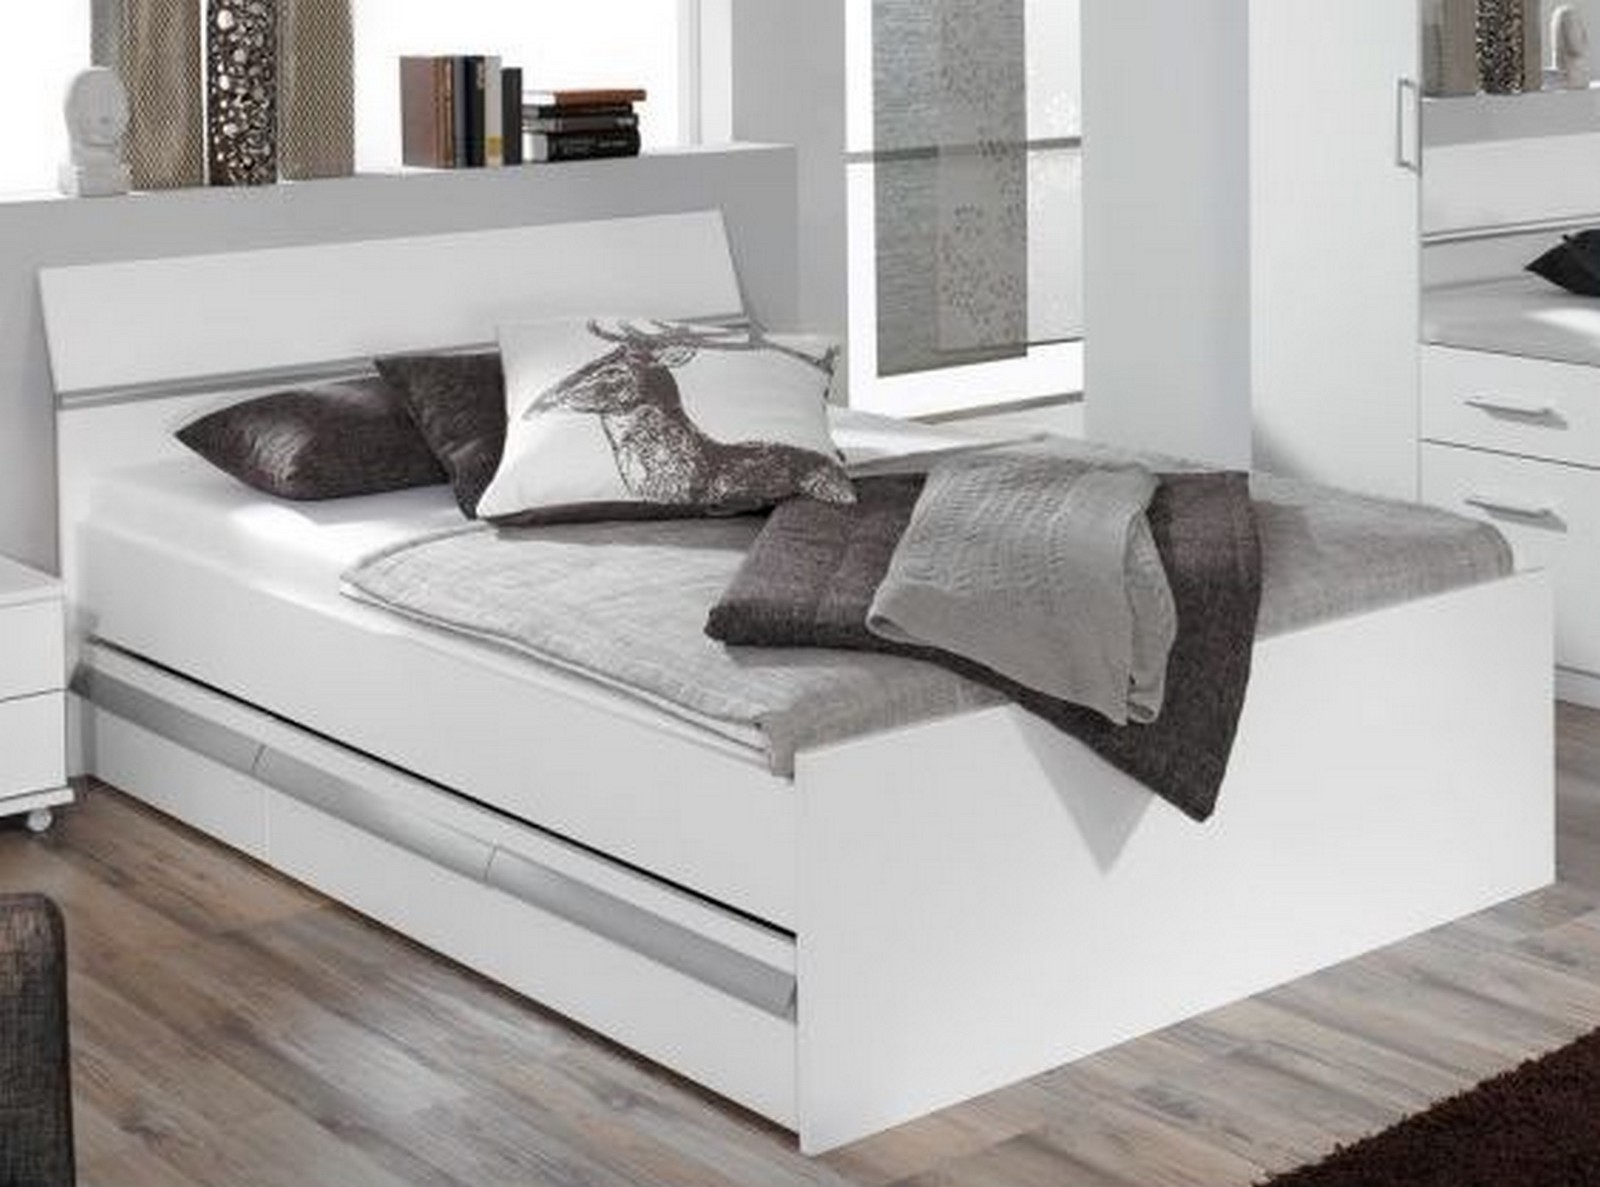 bett mit bettkasten komfortbett bett 140x200 terenia ebay. Black Bedroom Furniture Sets. Home Design Ideas